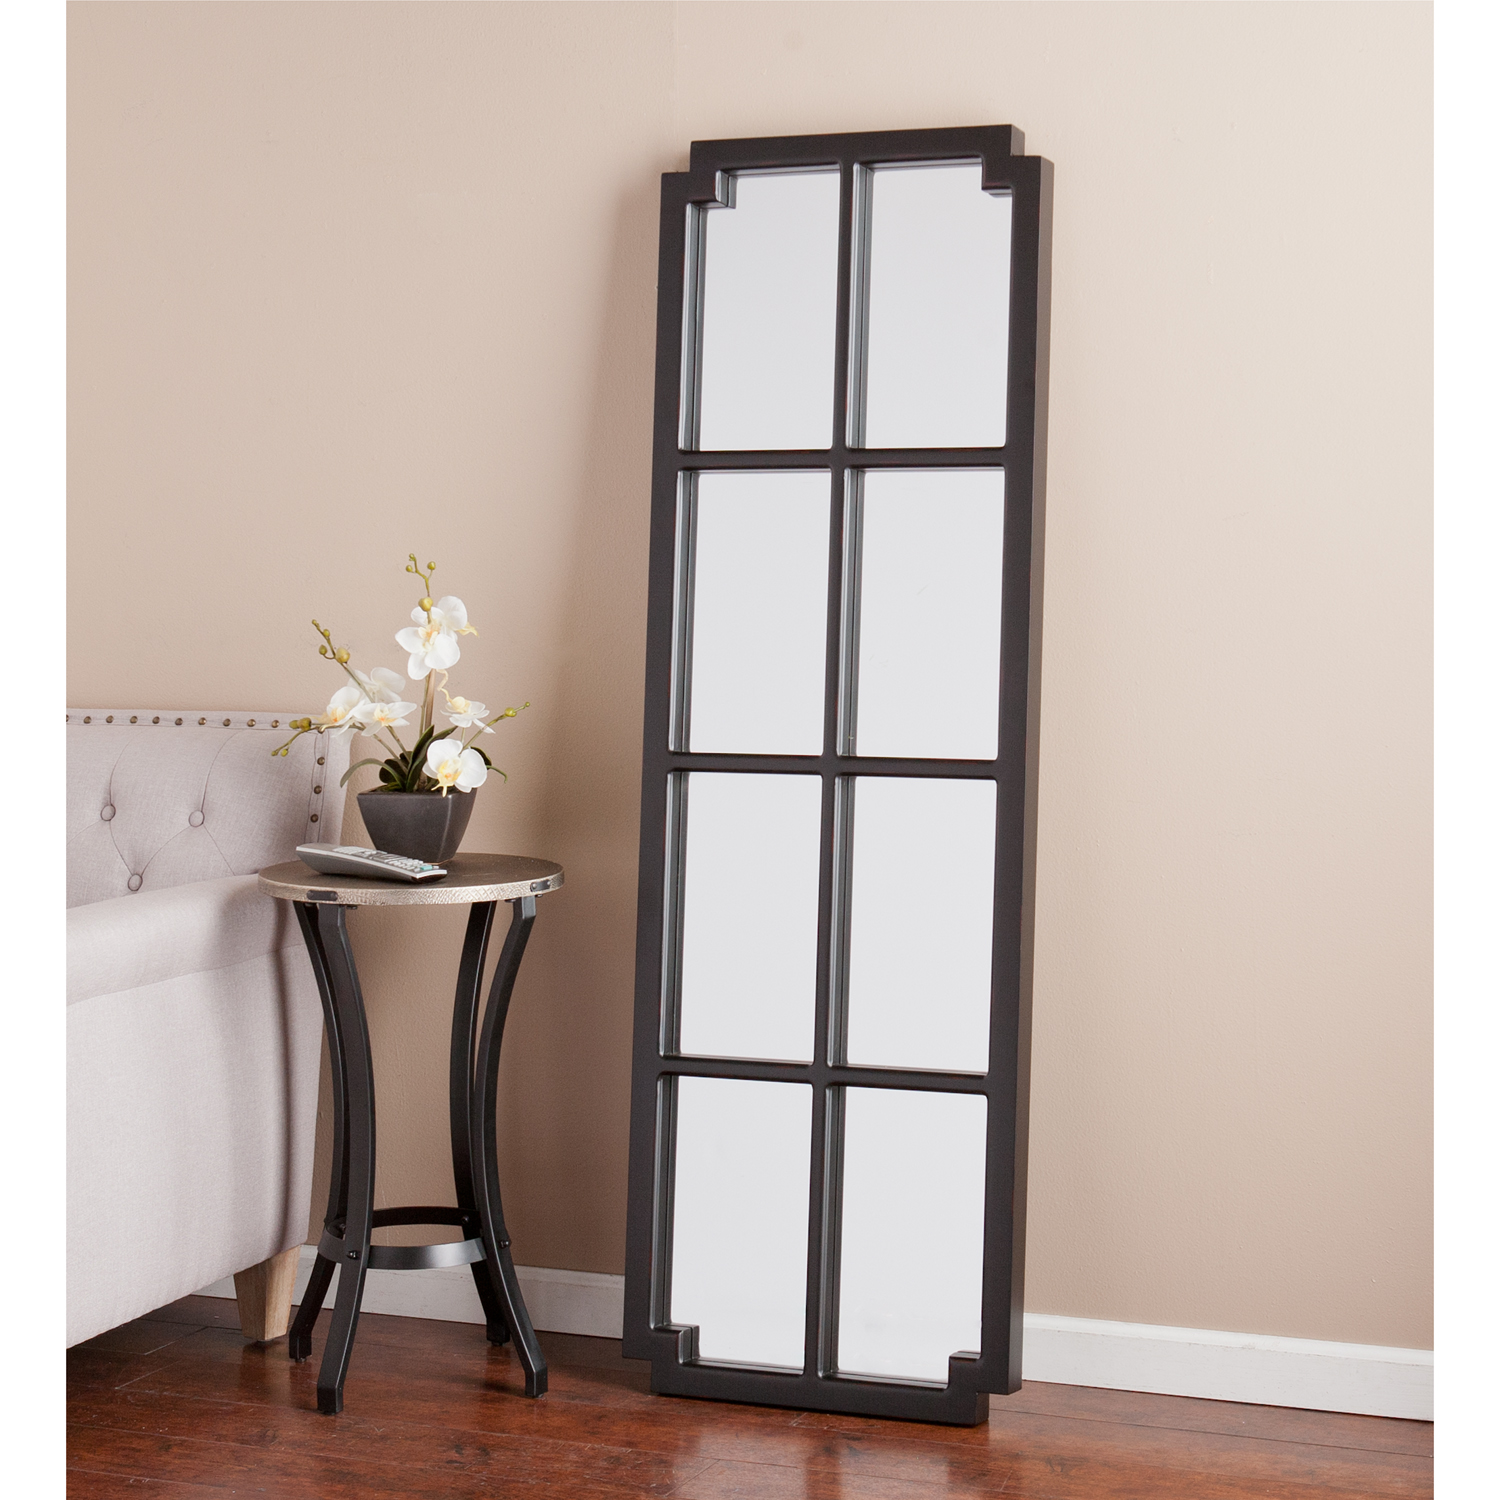 Windowpane Mirror | Rectangular Wall Mirror | Discount Wall Mirrors